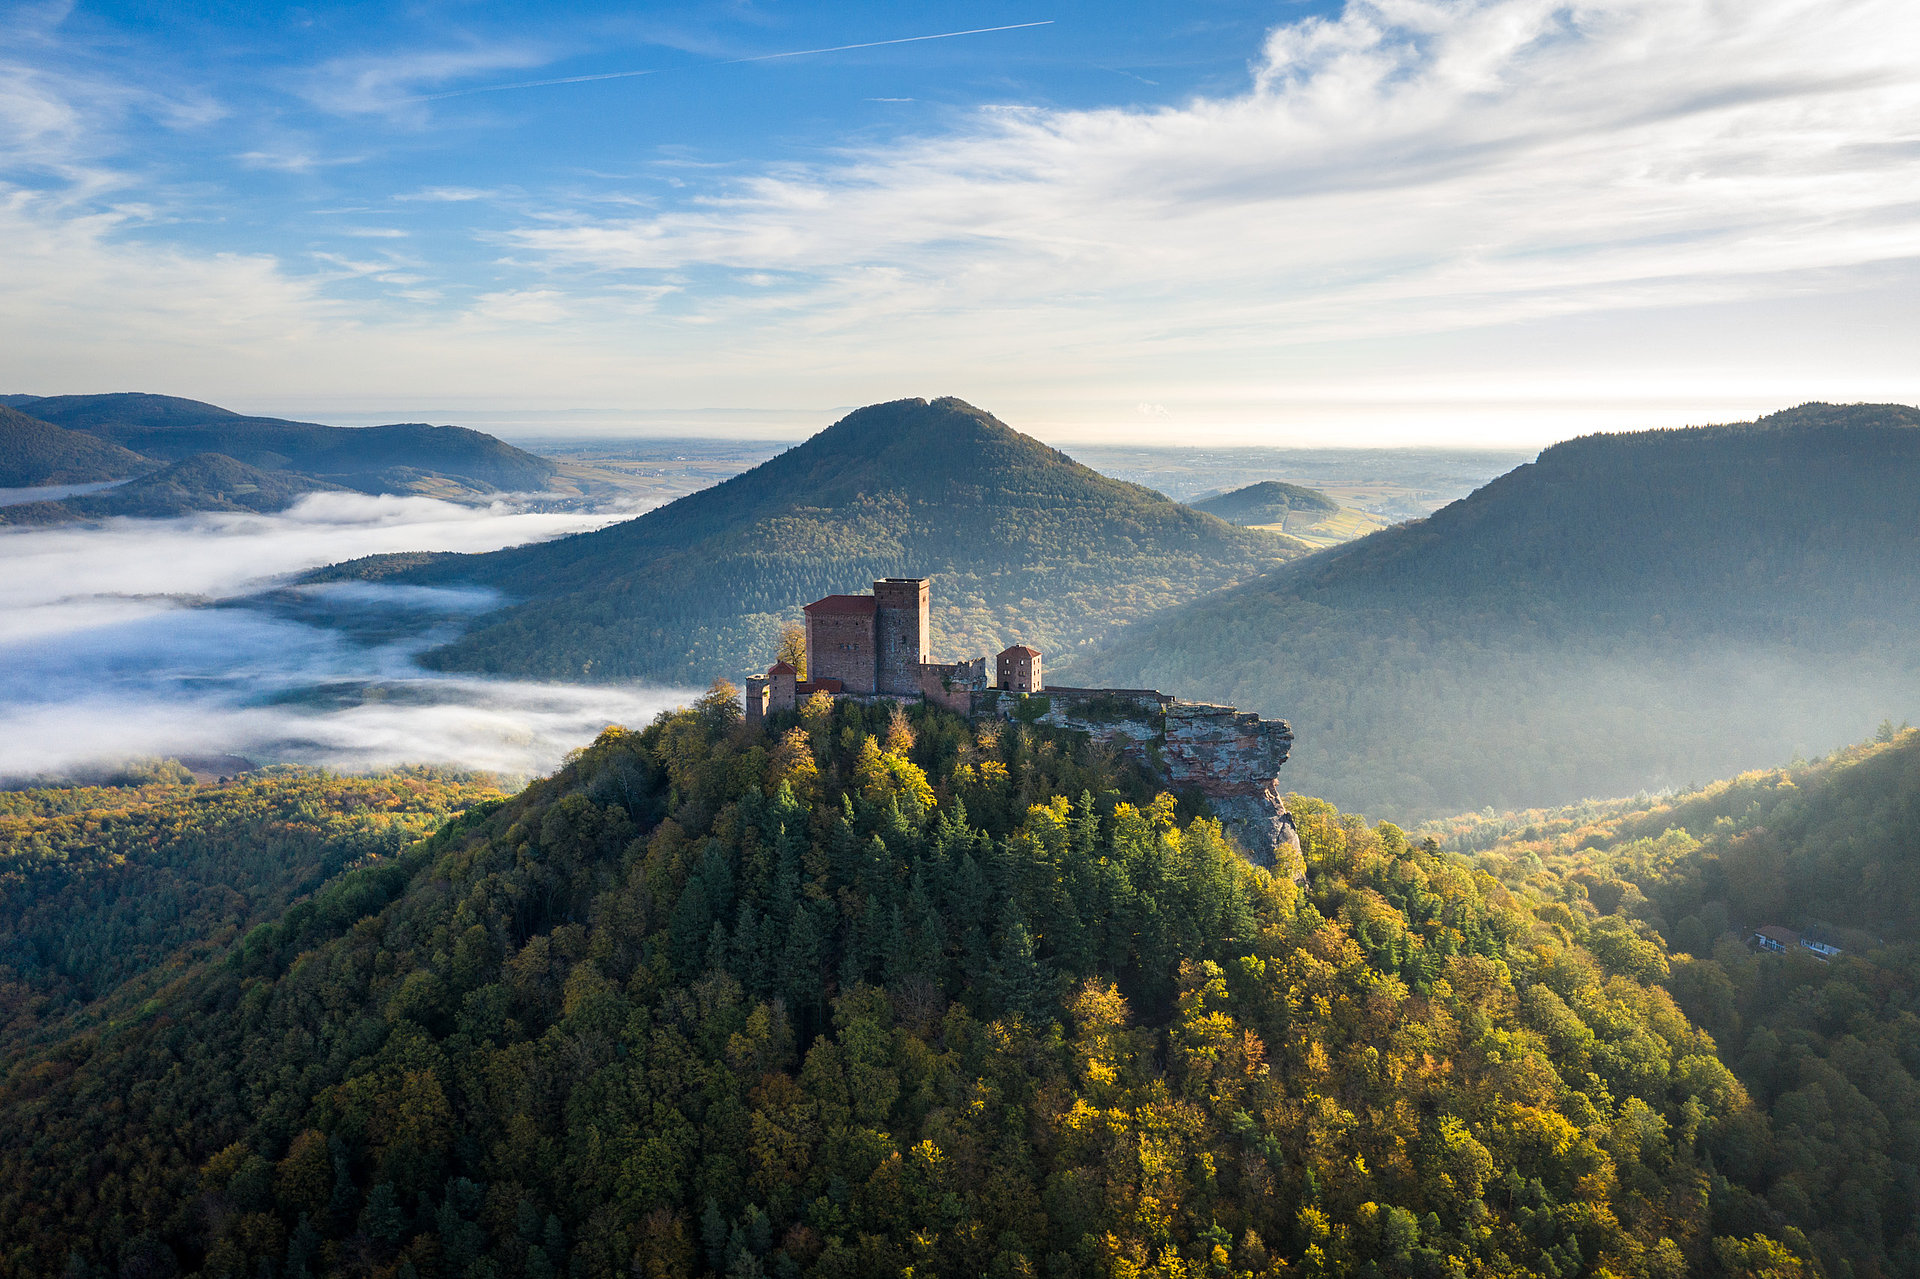 Beautiful view of the Trifels Castle, Palatinate